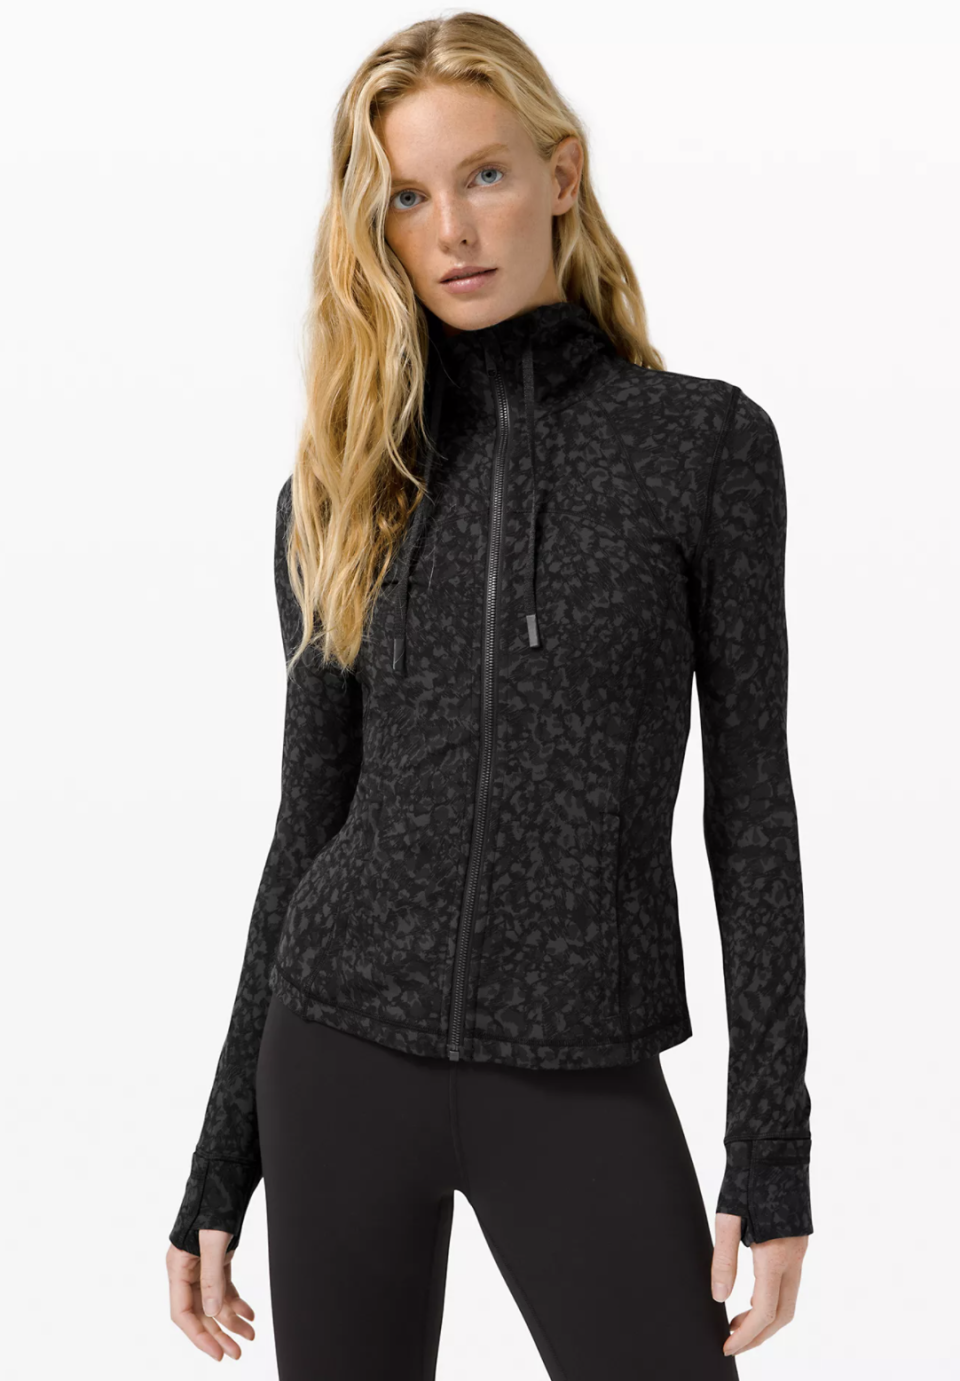 Hooded Define Jacket Nulu - Lululemon, $99 (originally $138)